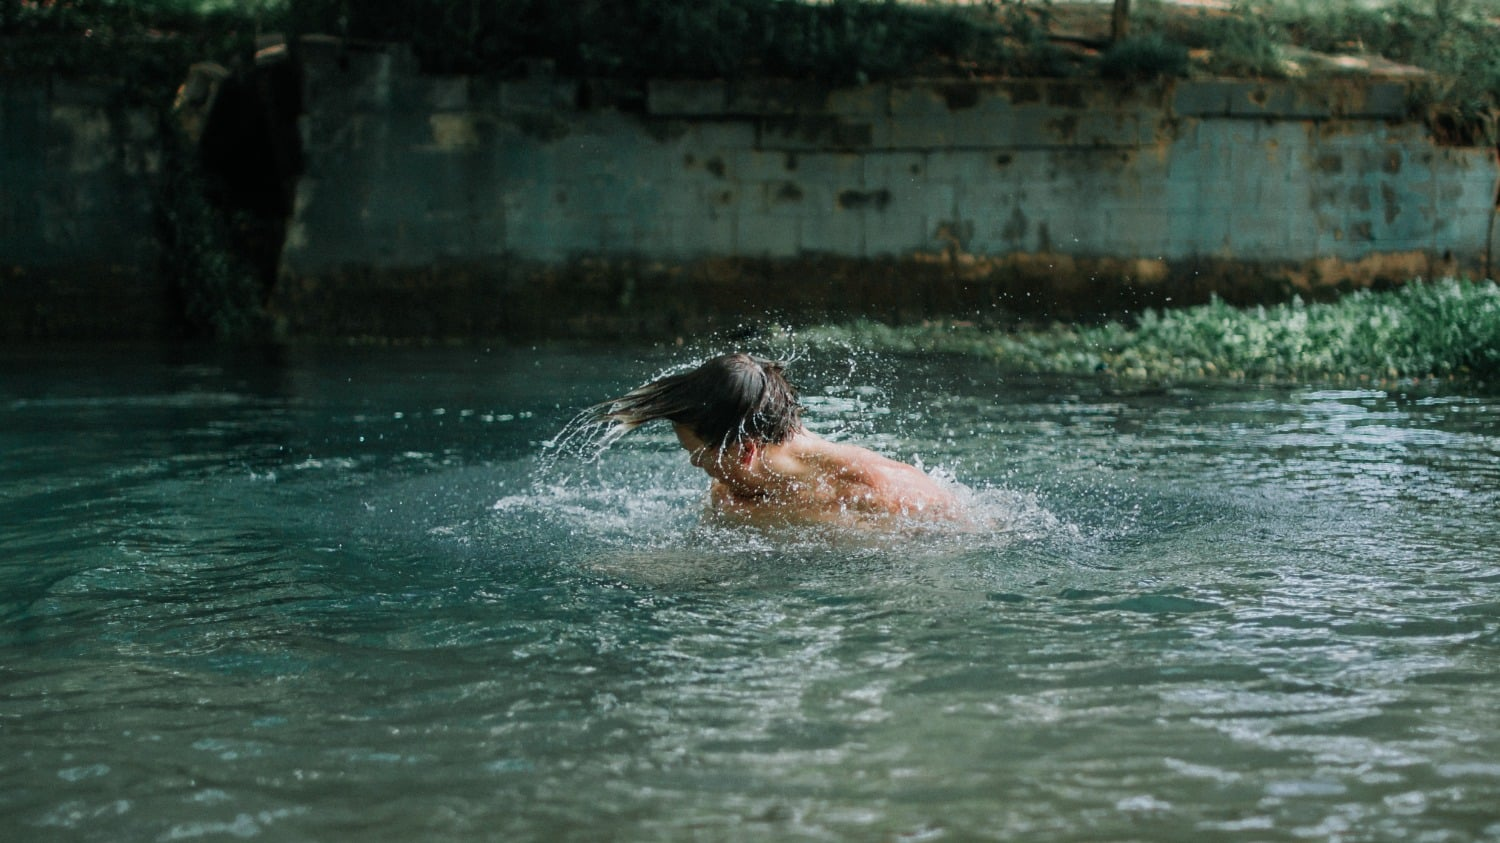 caucasian man in swimming hole shaking water off his head